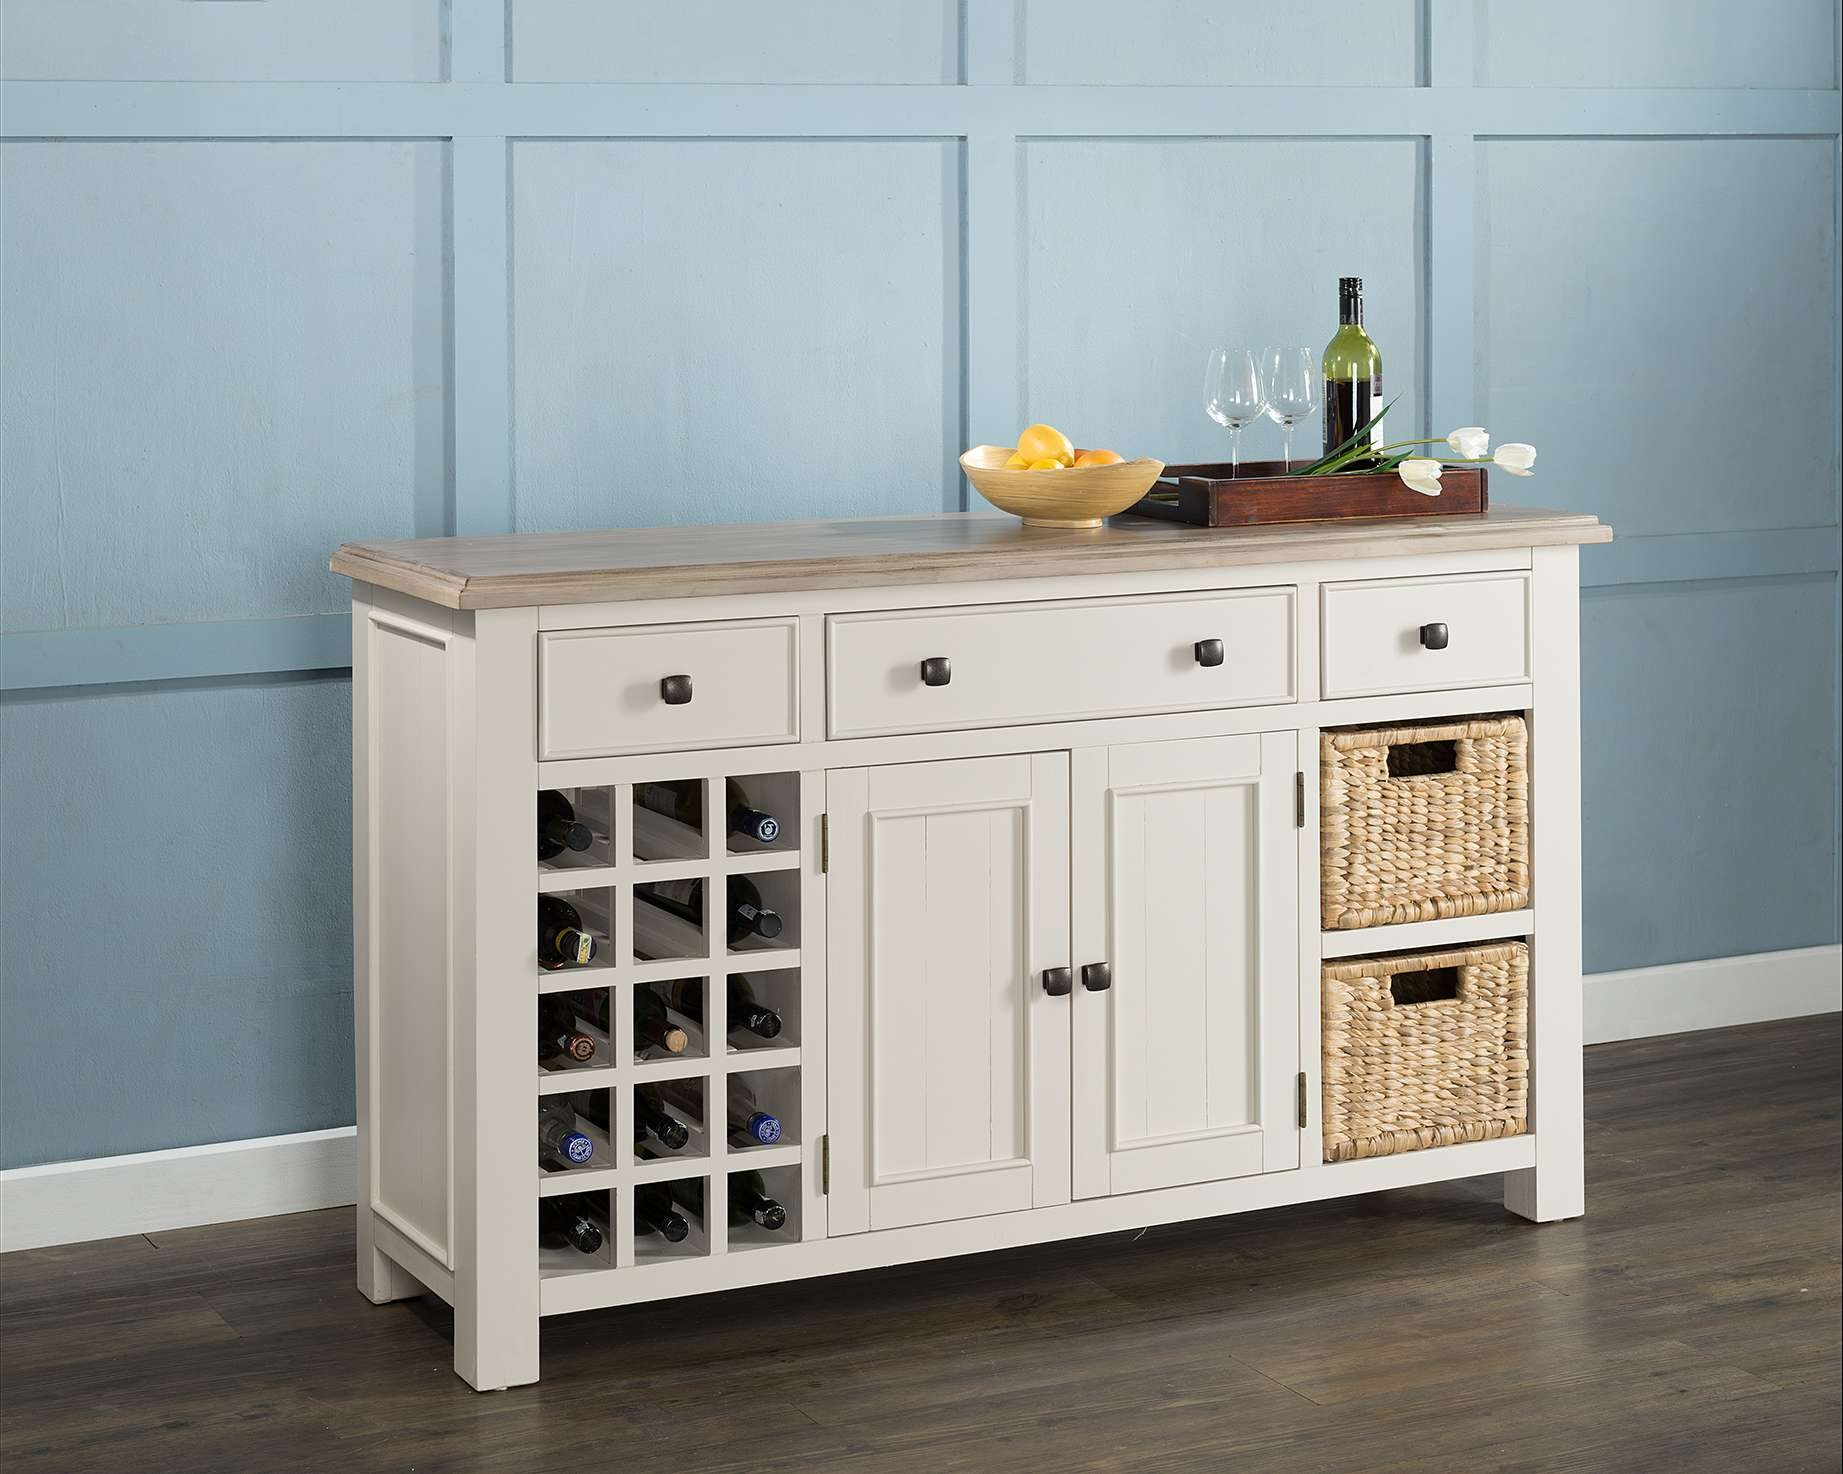 Large Sideboard With Wine Rack & Baskets (54 15) – Papaya Trading Inside Wine Sideboards (View 6 of 20)